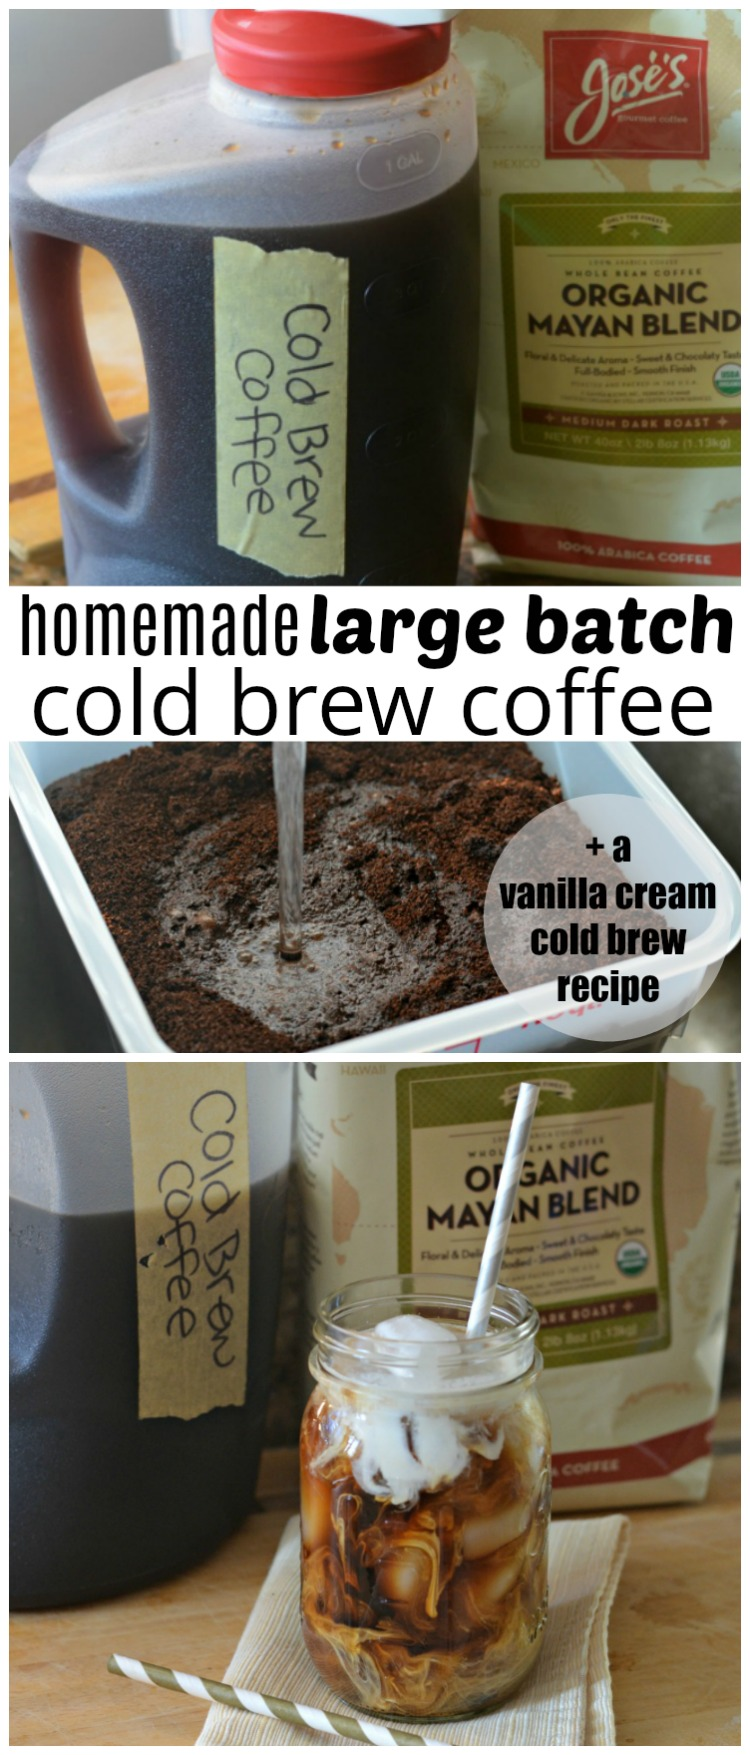 Try out the best homemade vanilla cream cold brew coffee recipe + learn how to make large batch cold brew coffee!